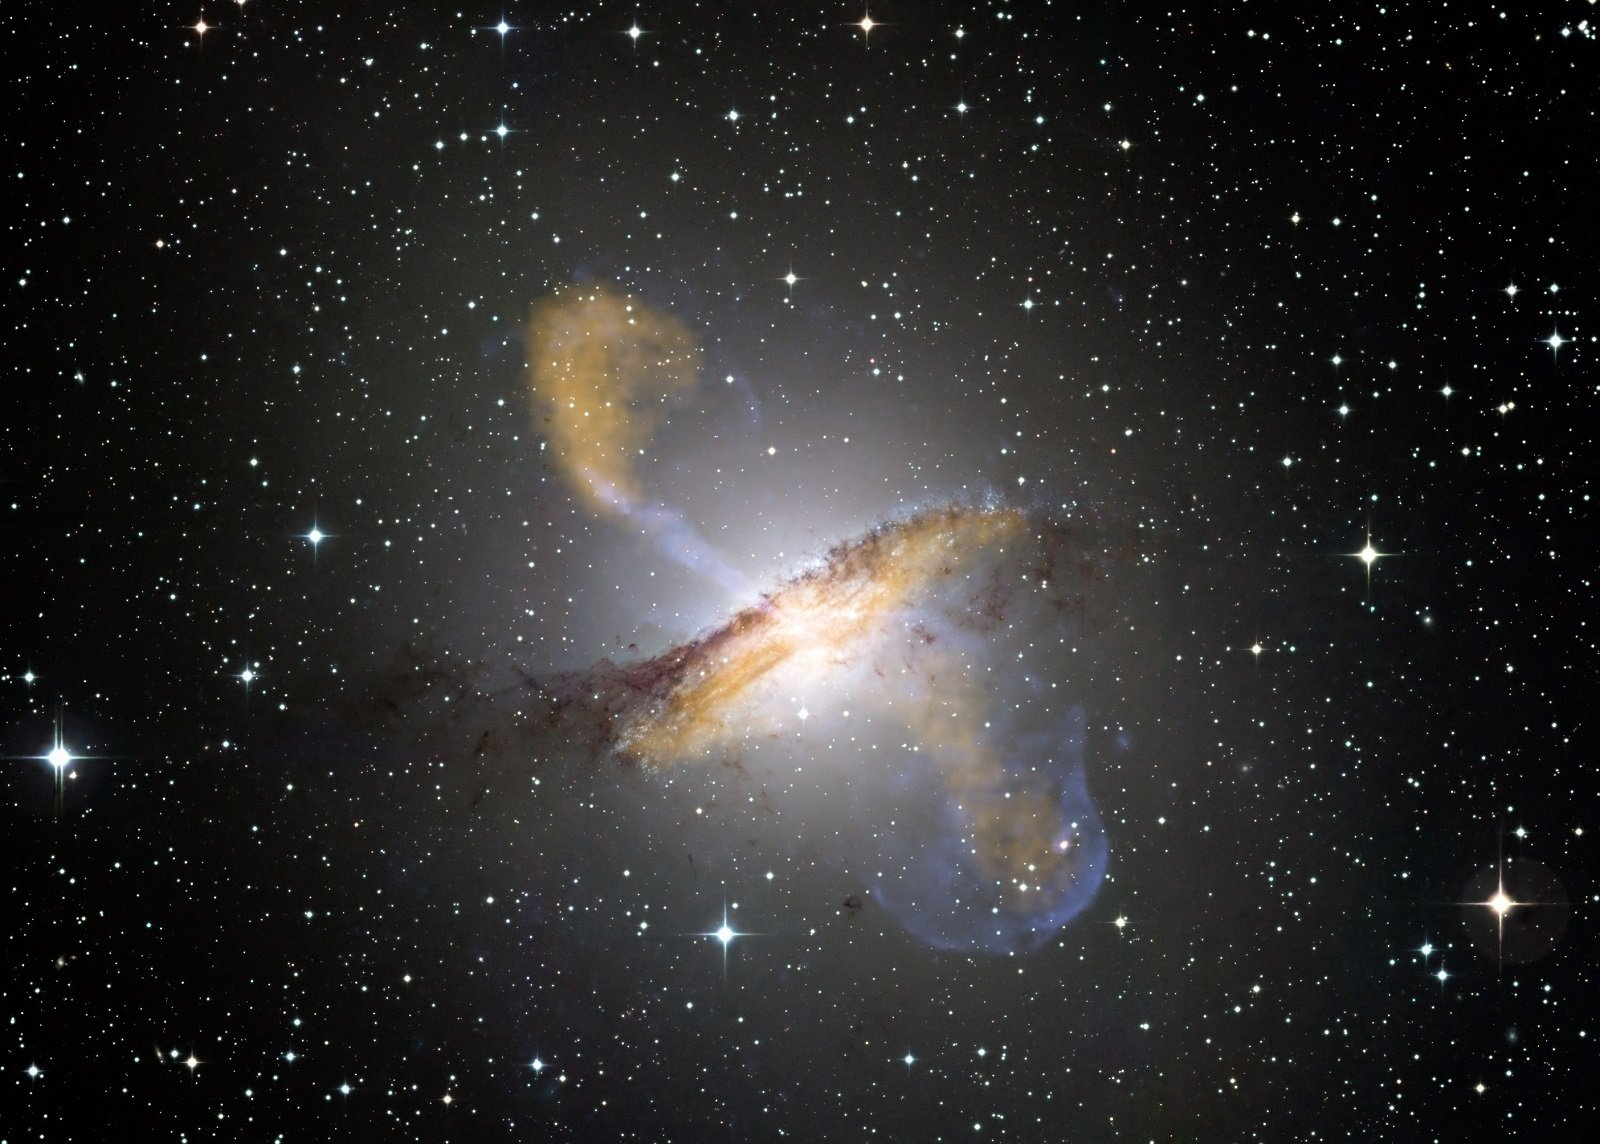 Composite image of the active galaxy Centaurus A, showing lobes and jets extending millions of light years into space. (Optical: ESO/WFI; Submillimeter: MPIfR/ESO/APEX/A.Weiss et al.; X-ray: NASA/CXC/CfA/R.Kraft et al.)